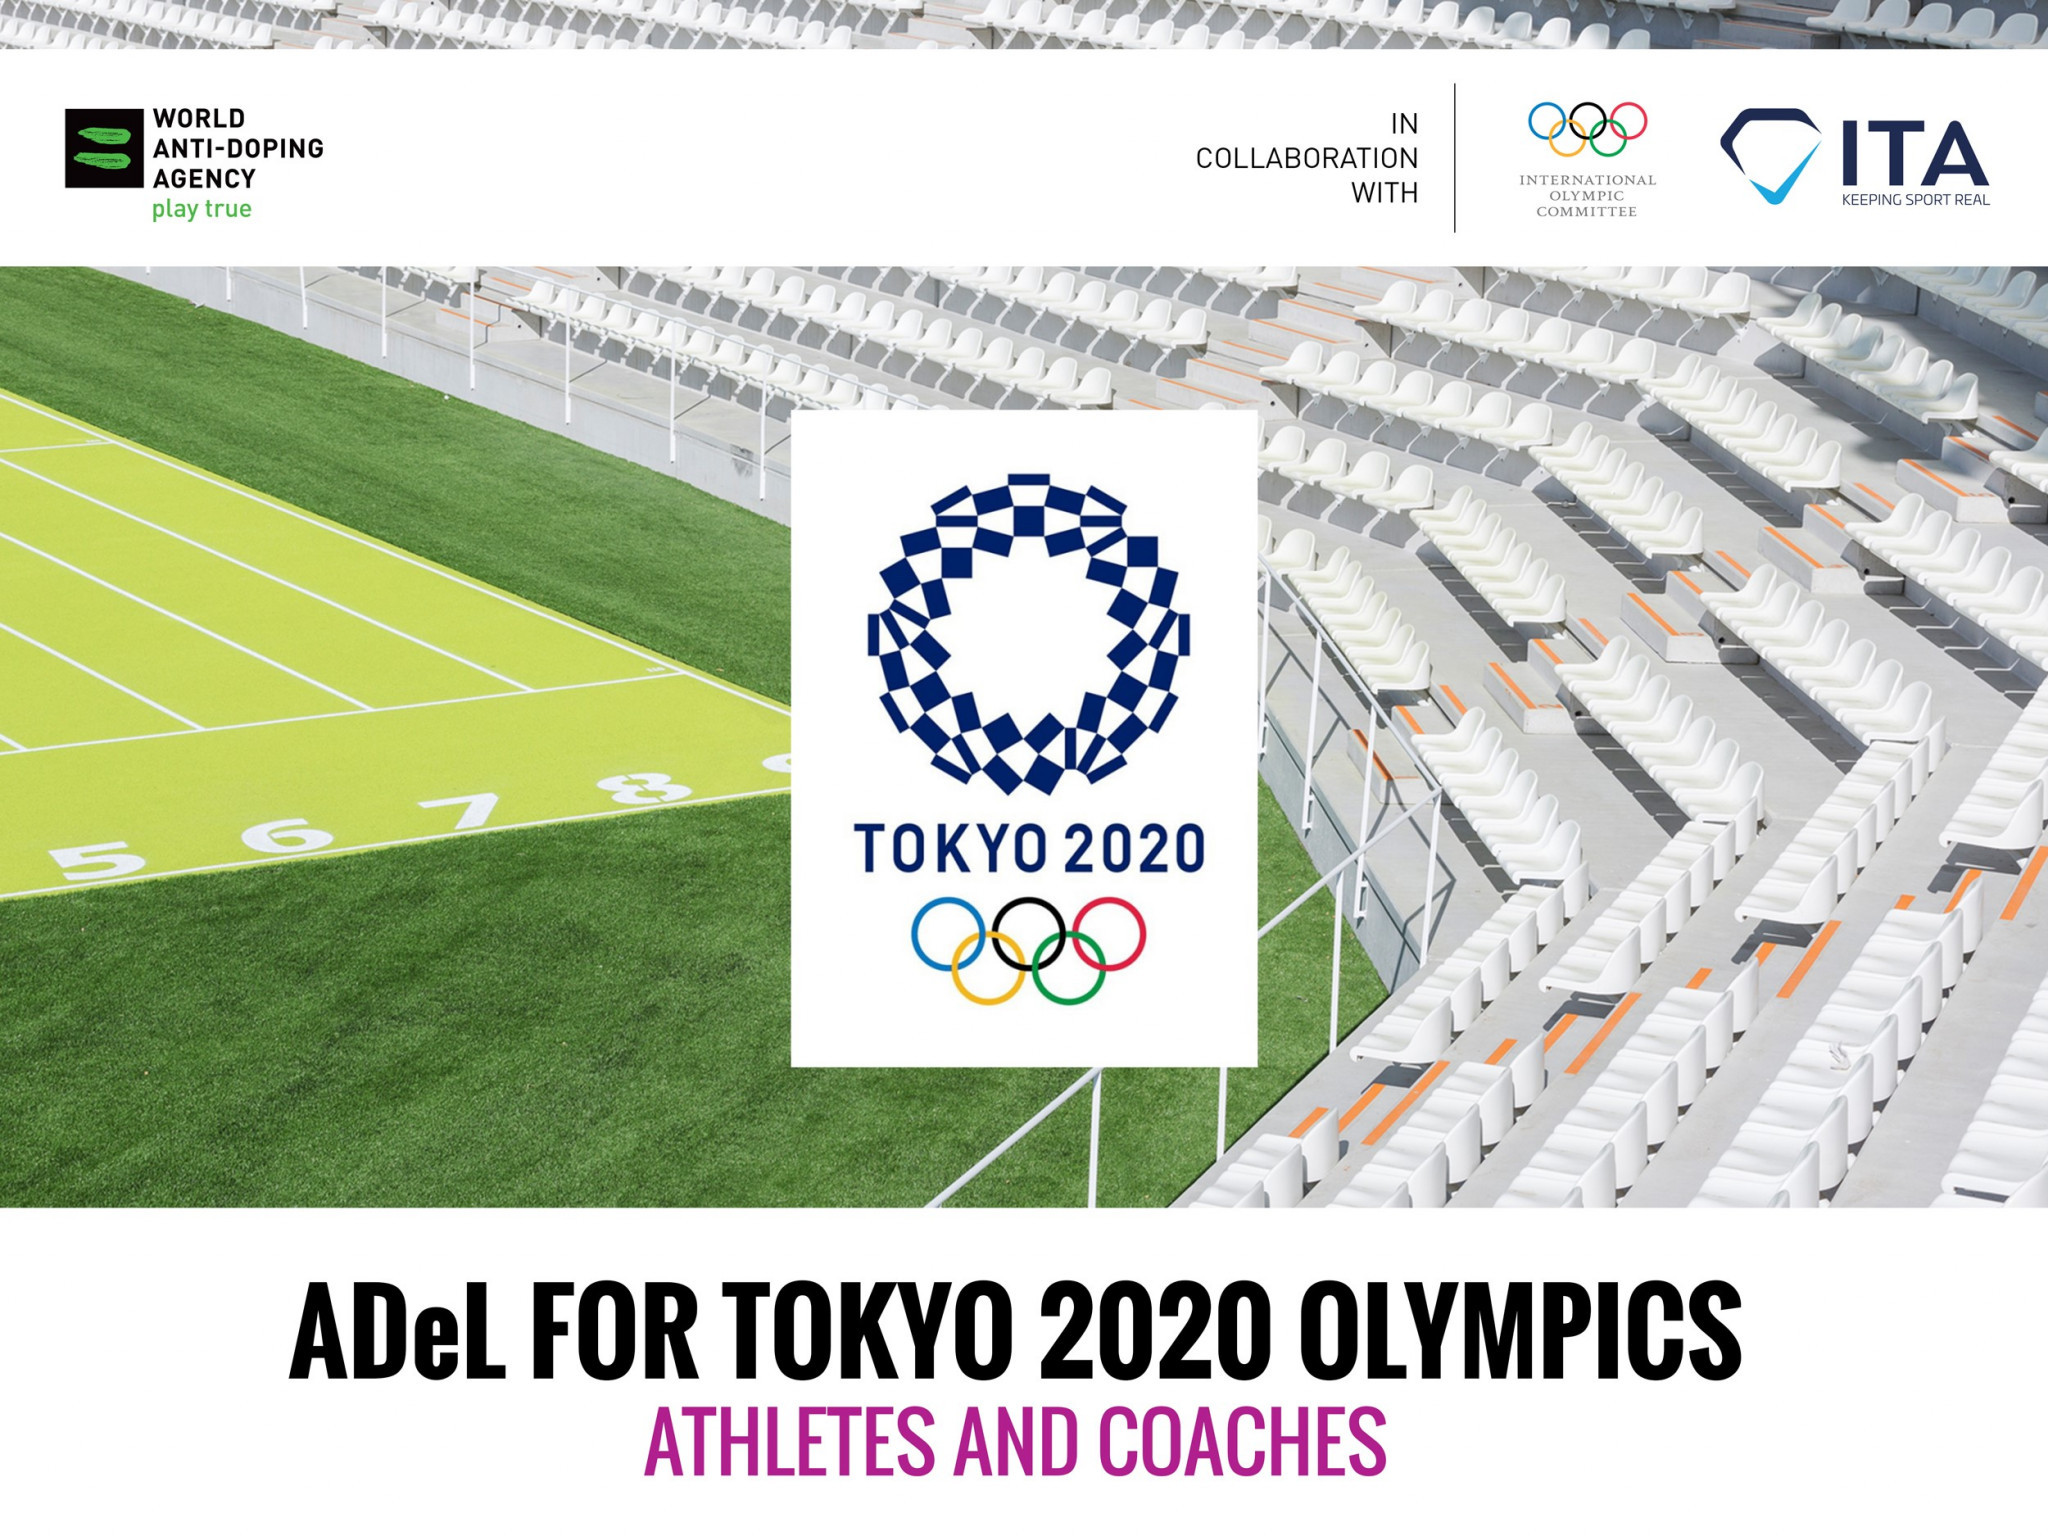 WADA launches new online course for athletes and coaches in build-up to Tokyo 2020